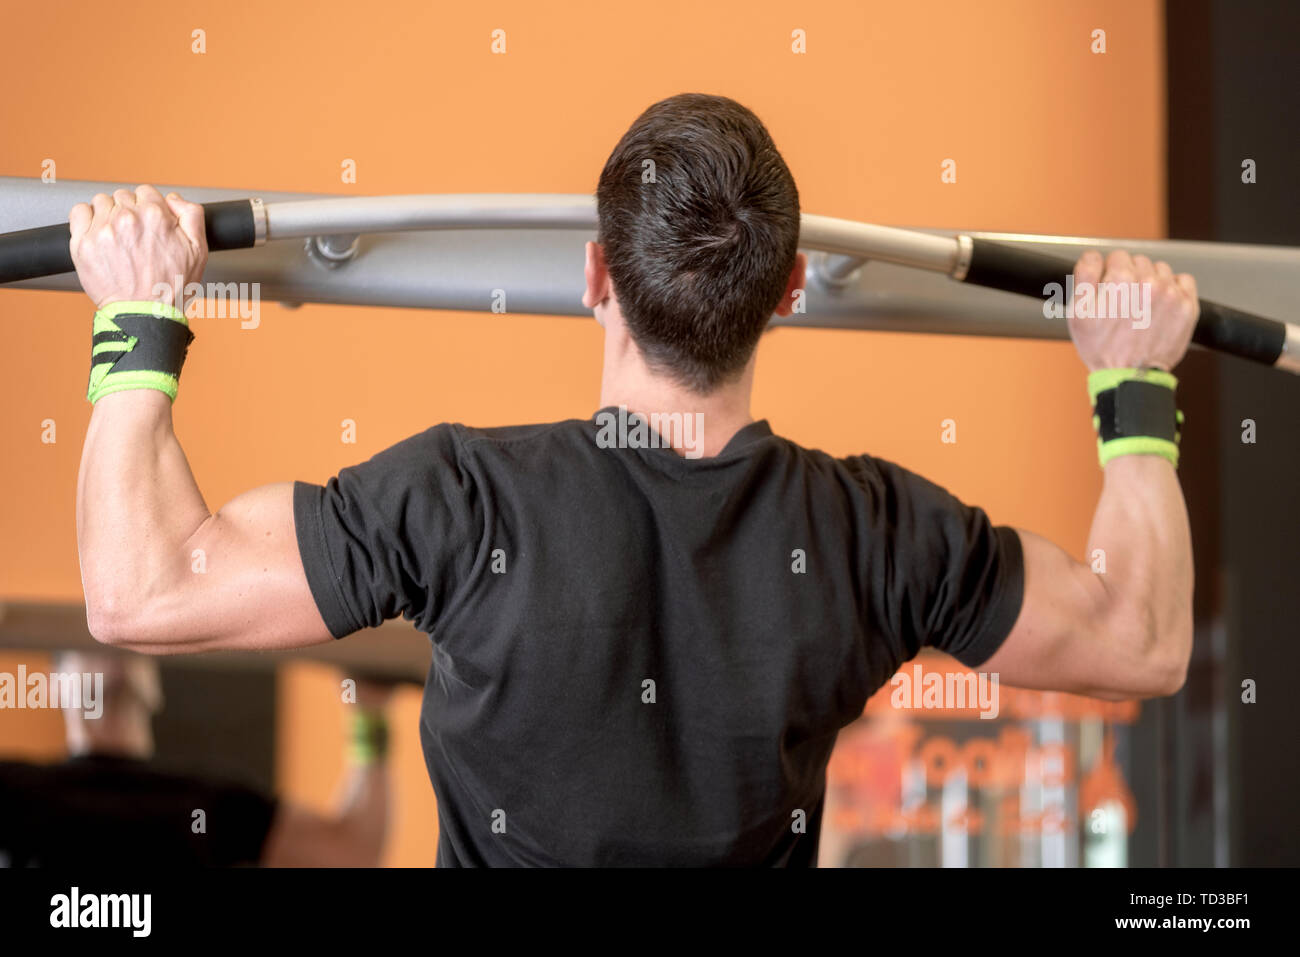 Athlete muscular fitness male model pulling up on horizontal bar in a gym . - Stock Image